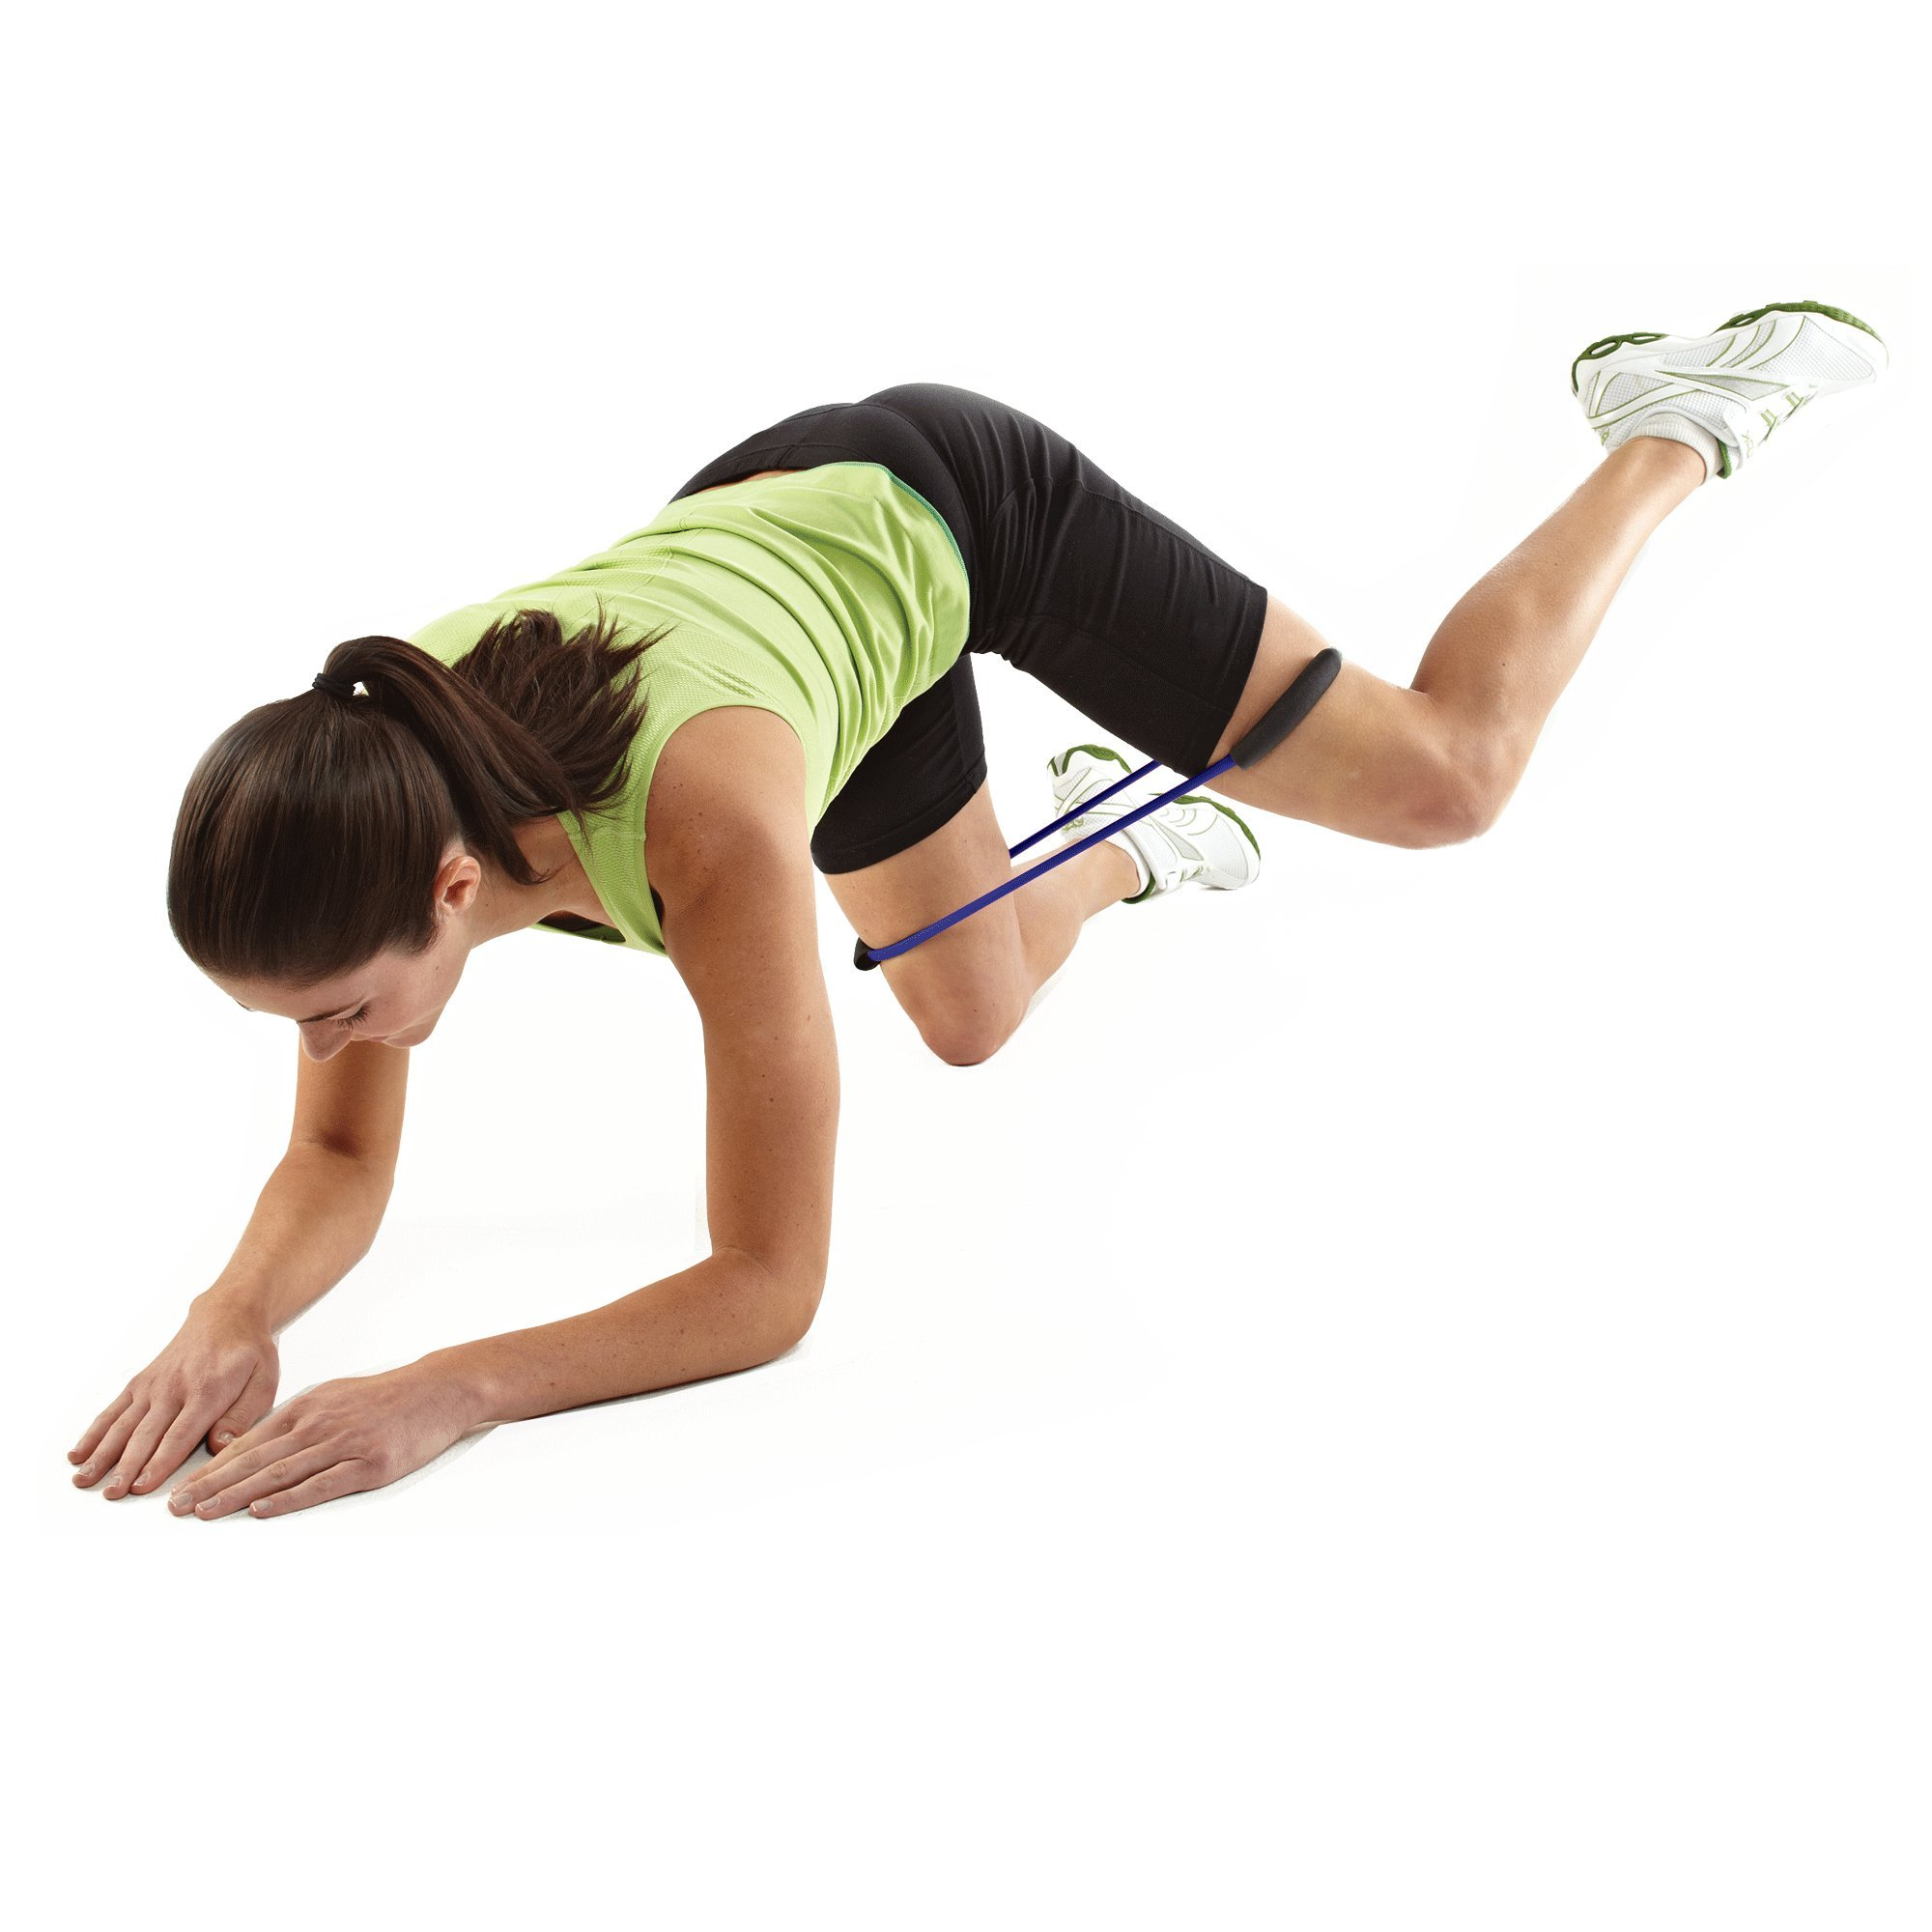 SPRI Xering Resistance Band Exercise Cords All Bands Sold Separately